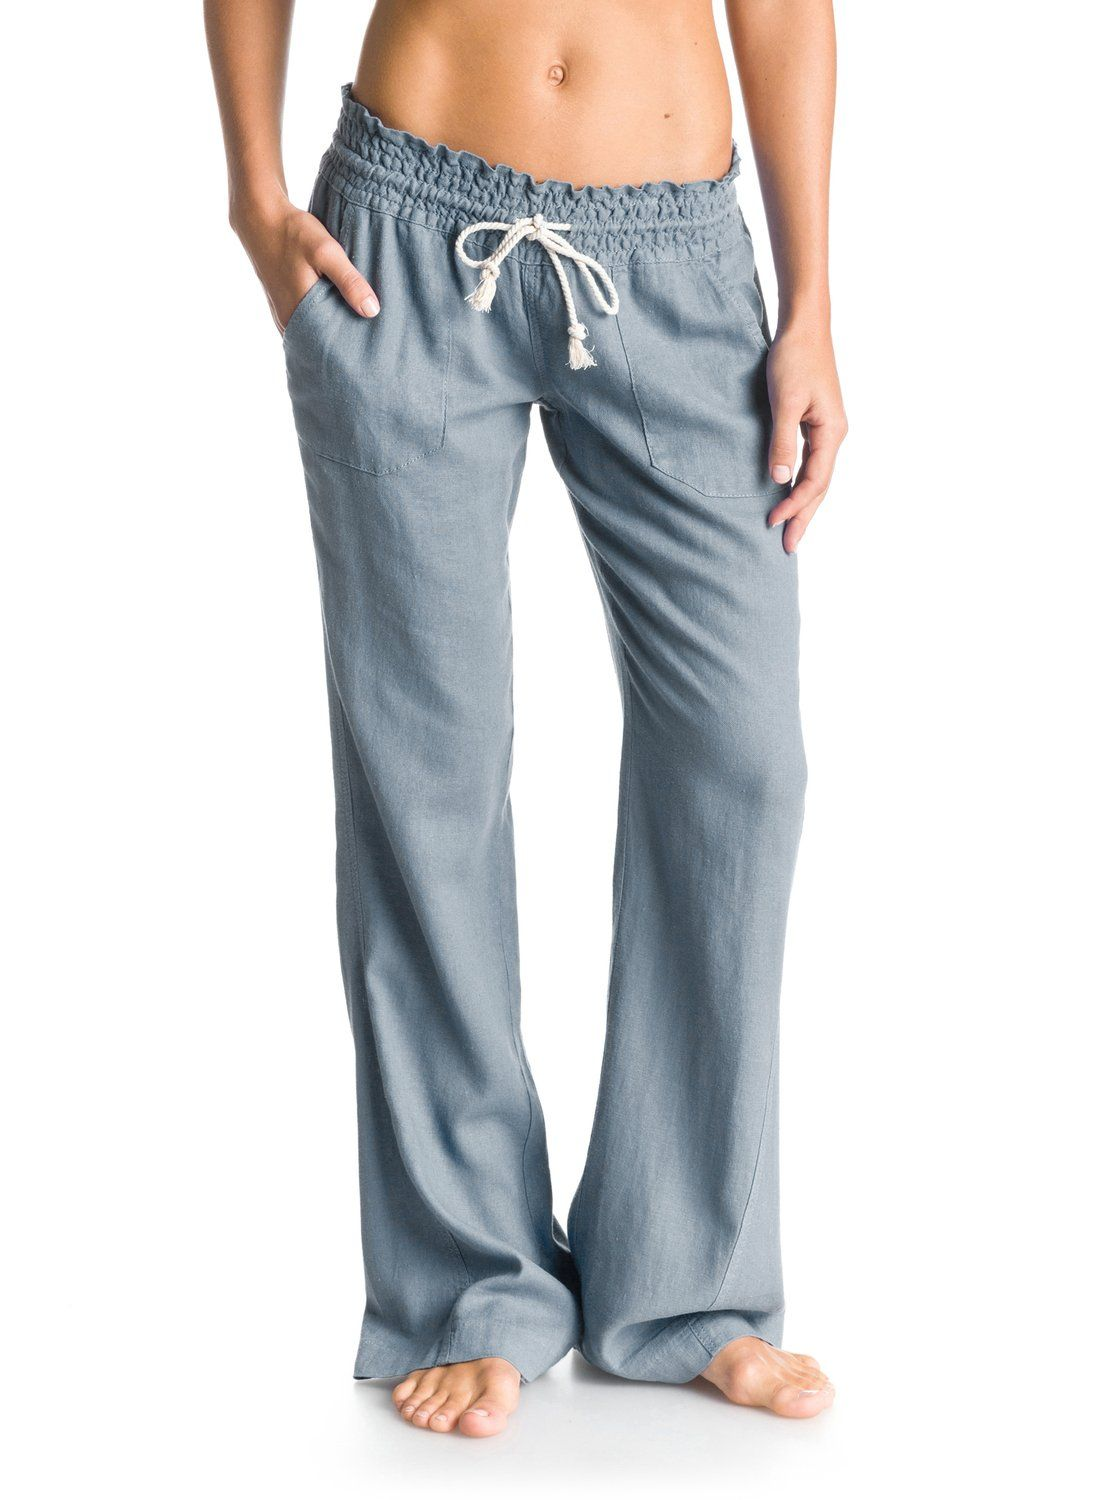 905e2dce08632c Oceanside Flared Linen Pants in 2019 | FASHION | Beach pants, Pants ...